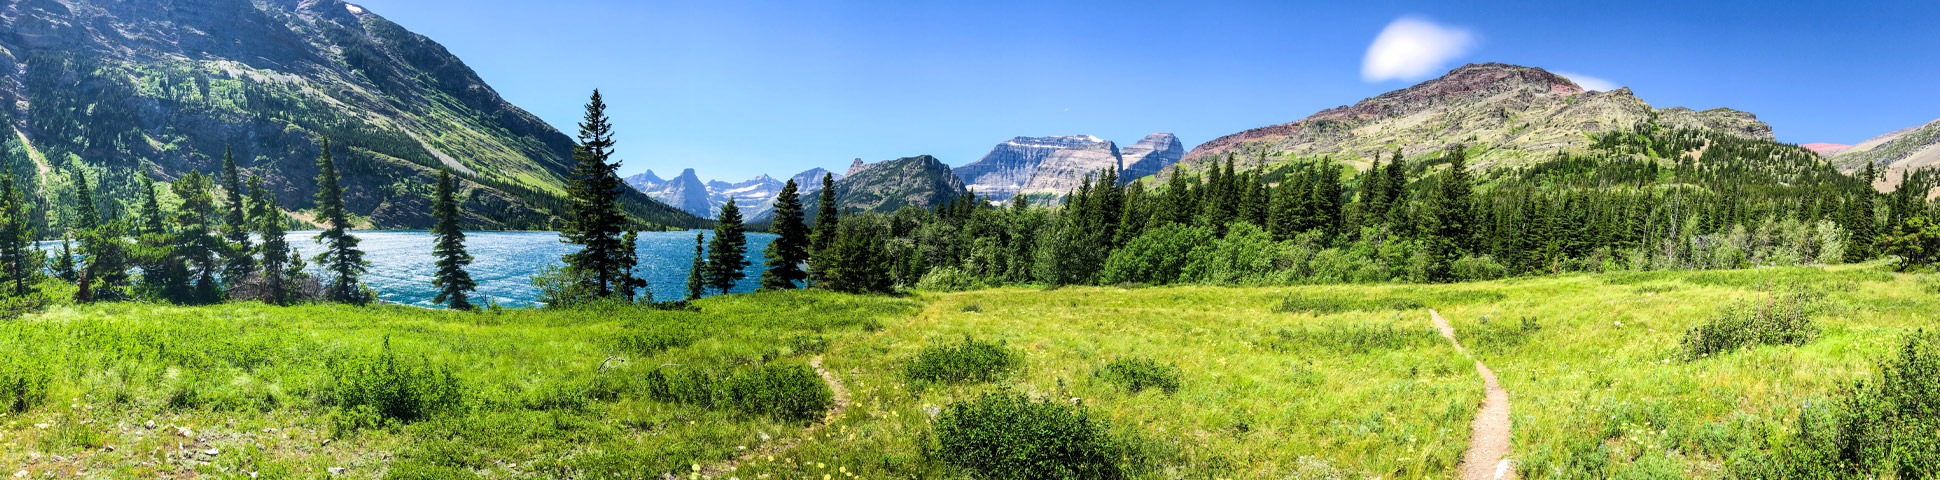 Panoramic view of North Circle Backpacking Trail in Montana, USA